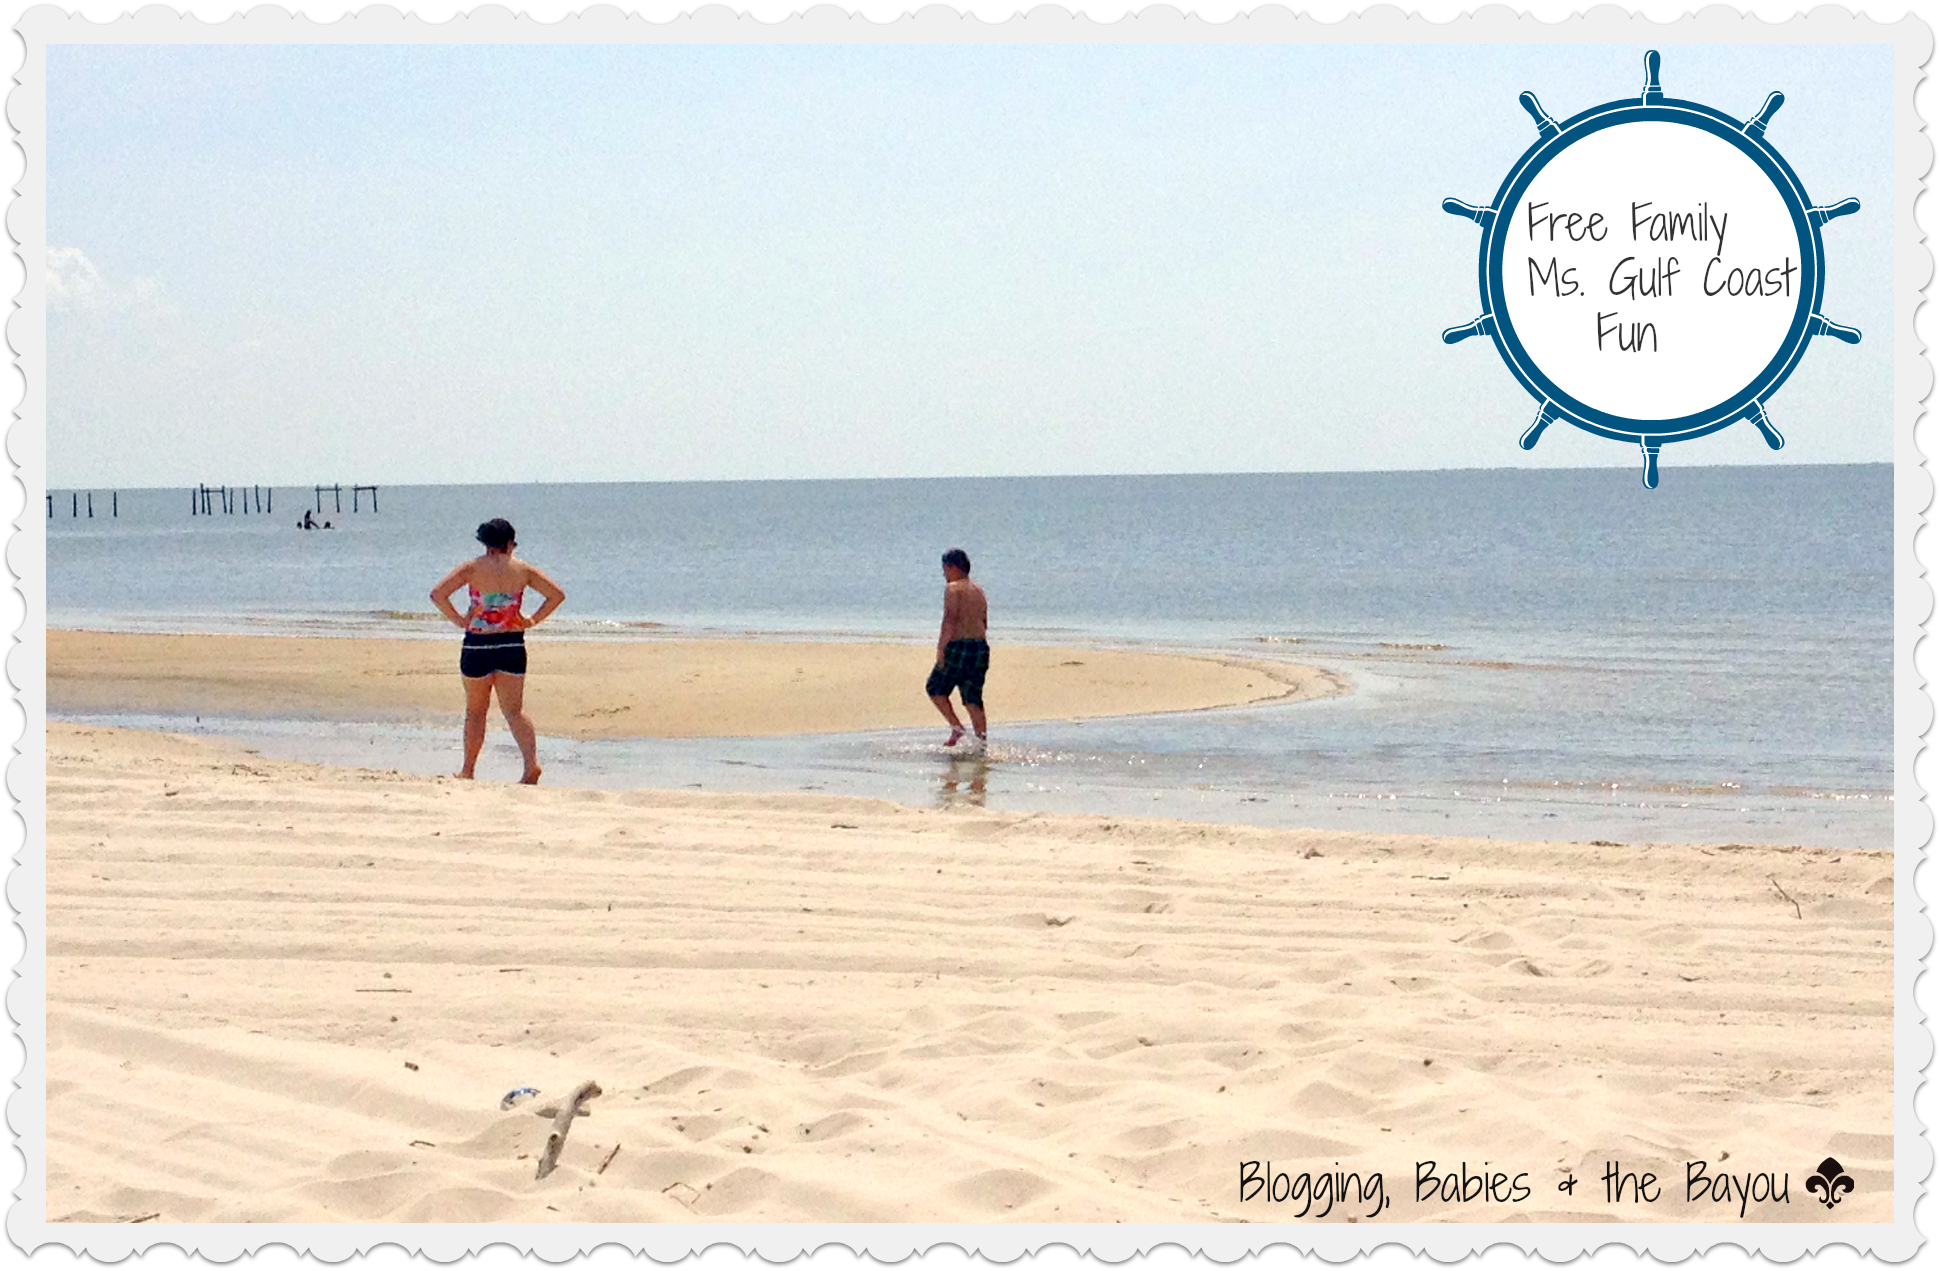 Family Fun in Mississippi Gulf Coast